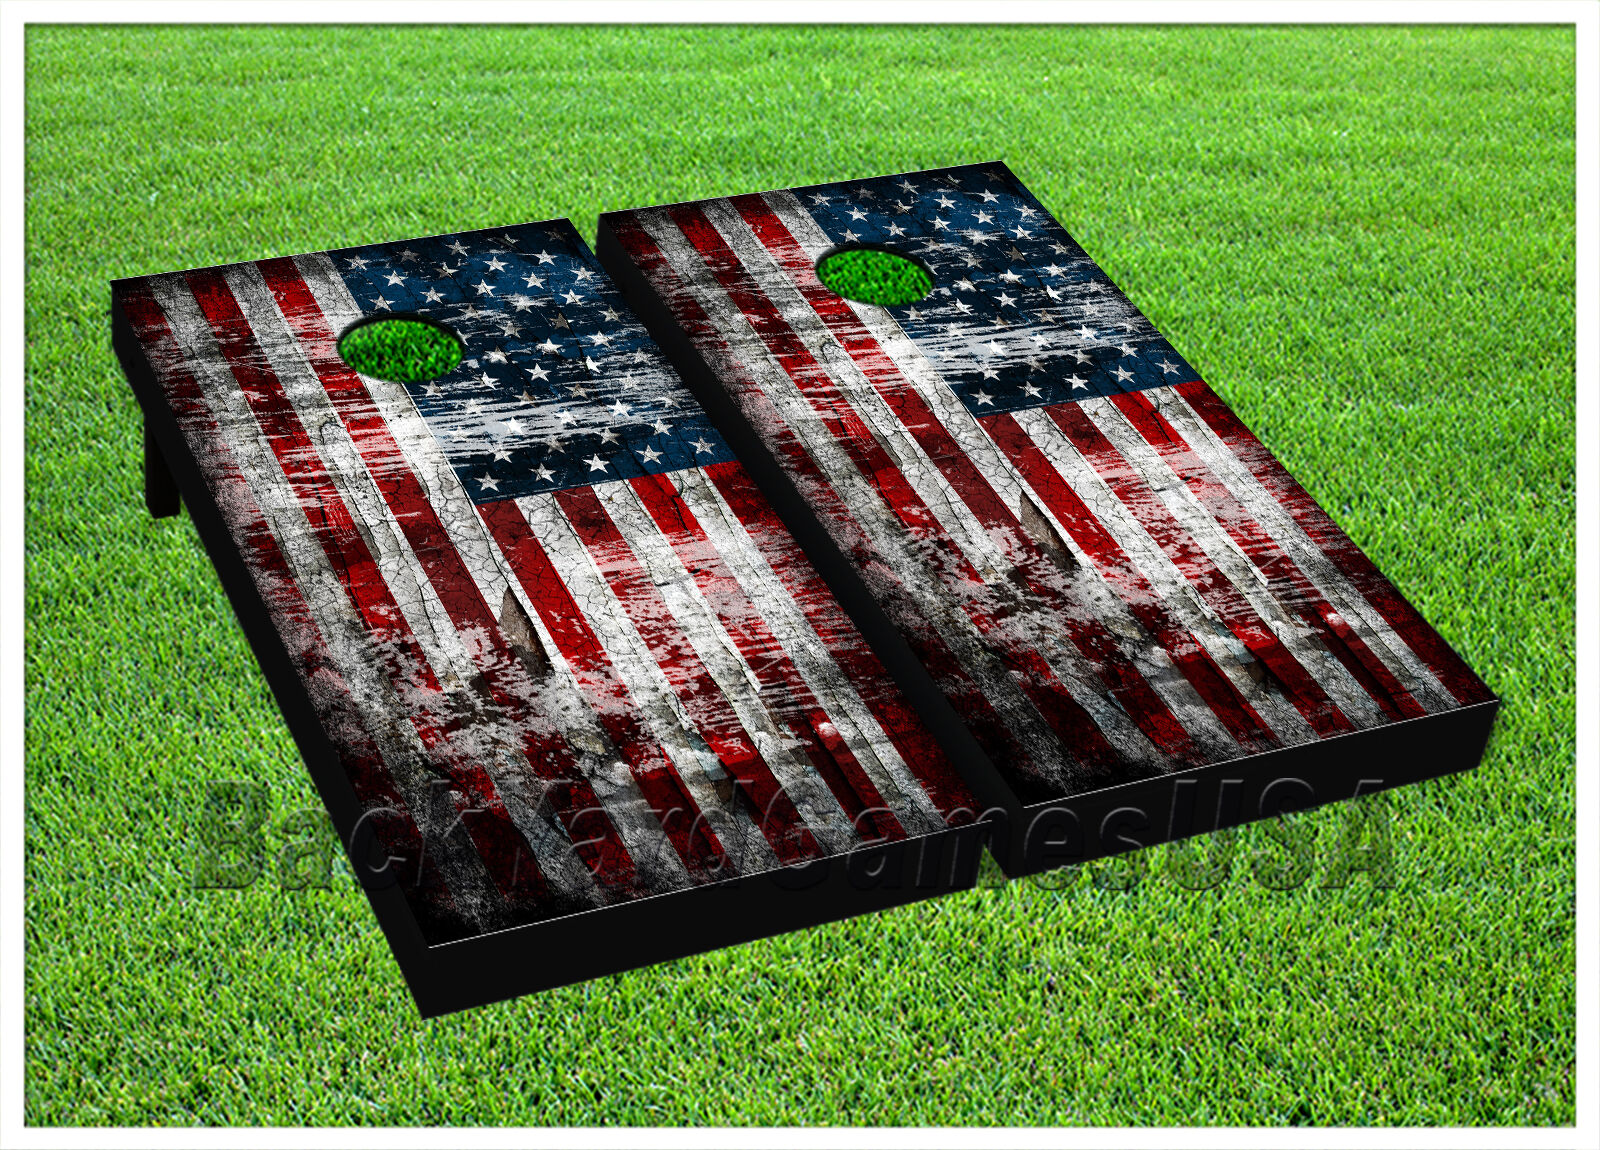 Vinyl Wraps Vintage Usa Flag Boards Decals Bag Toss Stickers 753 1 Of 1free Shipping See More